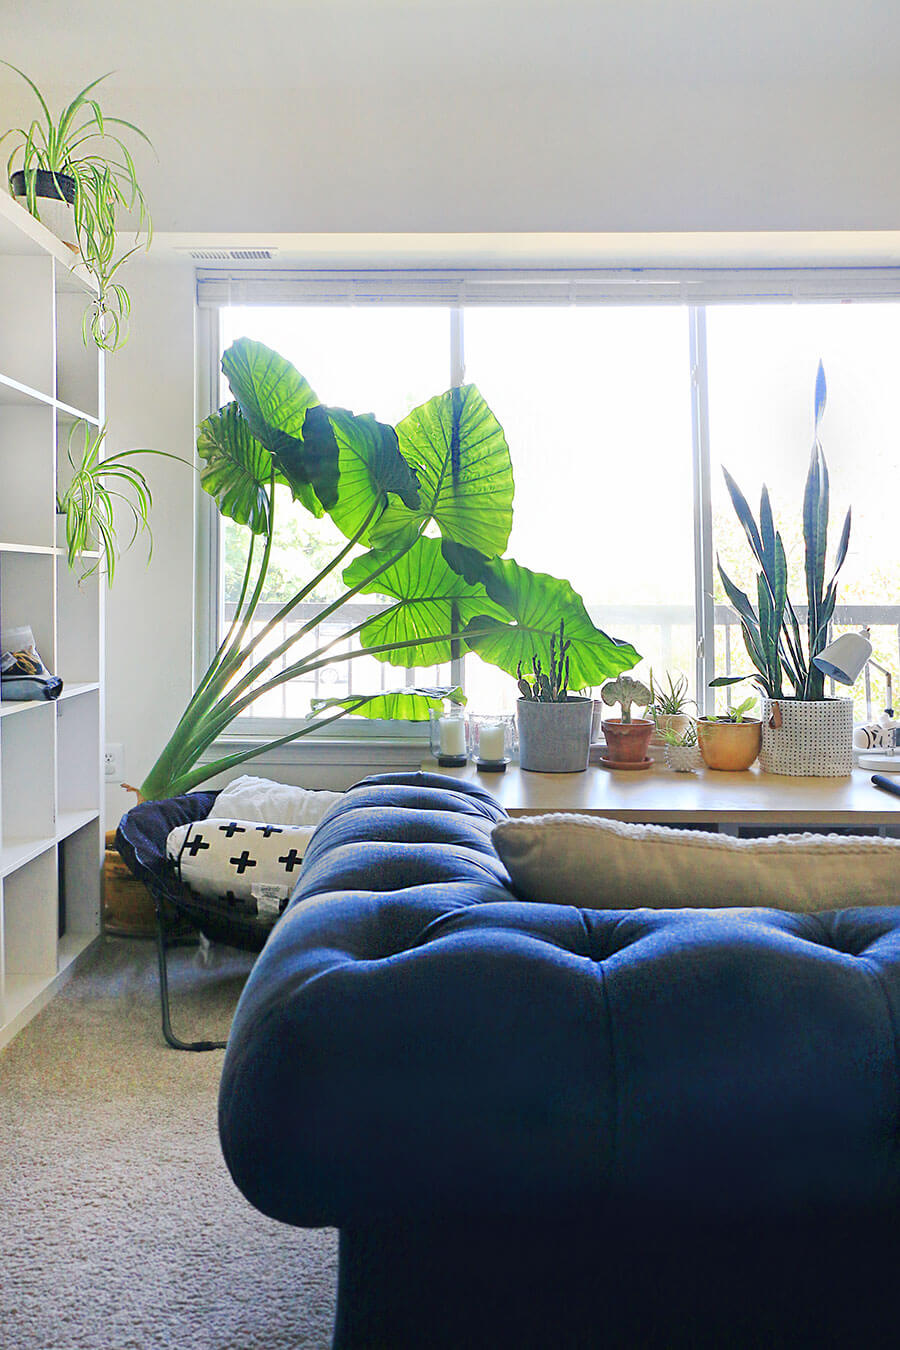 Large-elephant-leaf-in-a-living-room